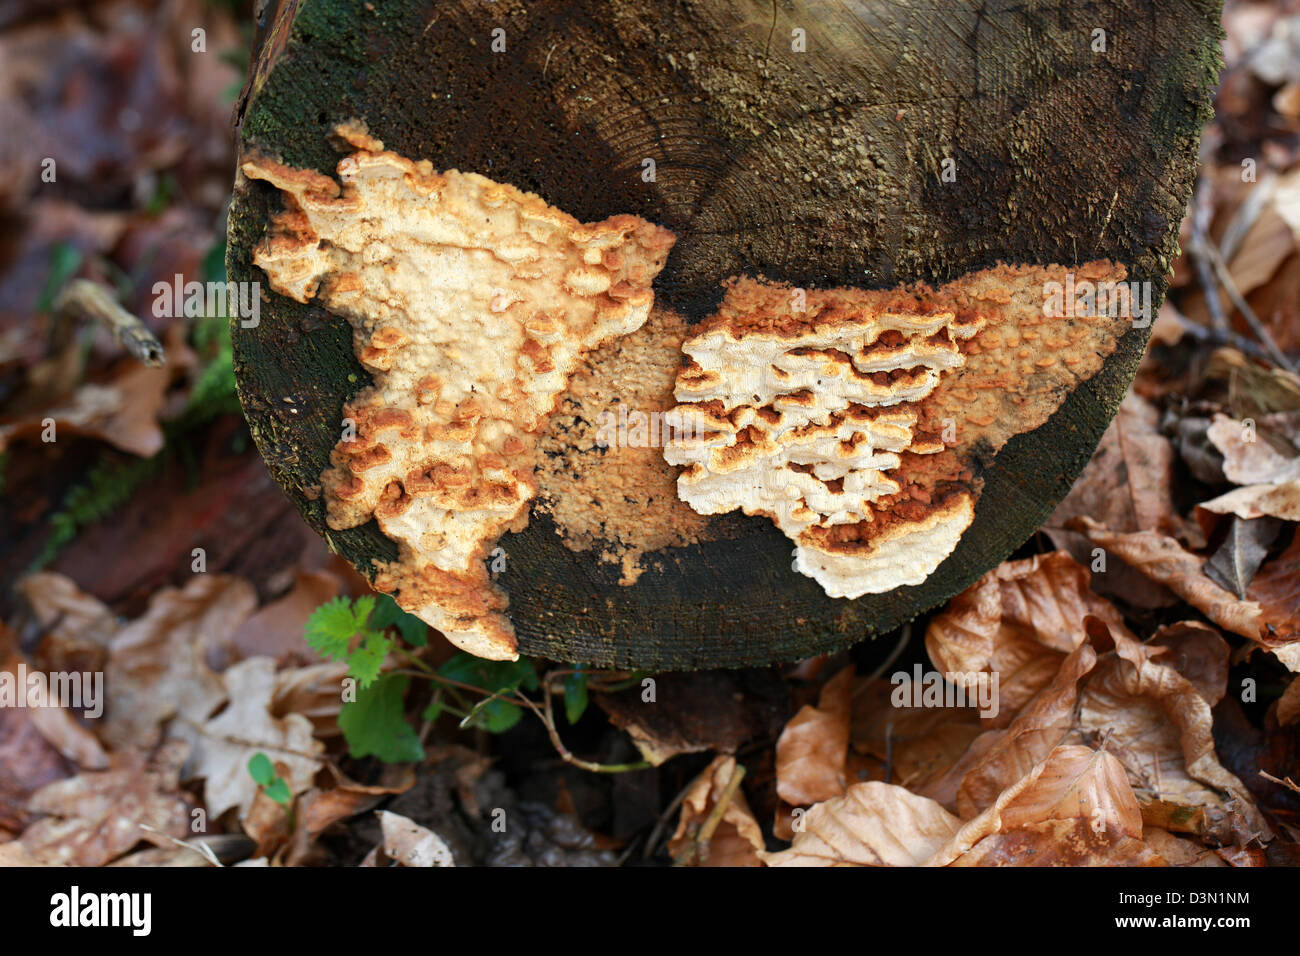 Root Rot, Root Fomes, Heterobasidion annosum (Fomes annosus), Bondarzewiaceae. Growing on a Recently Felled Conifer - Stock Image